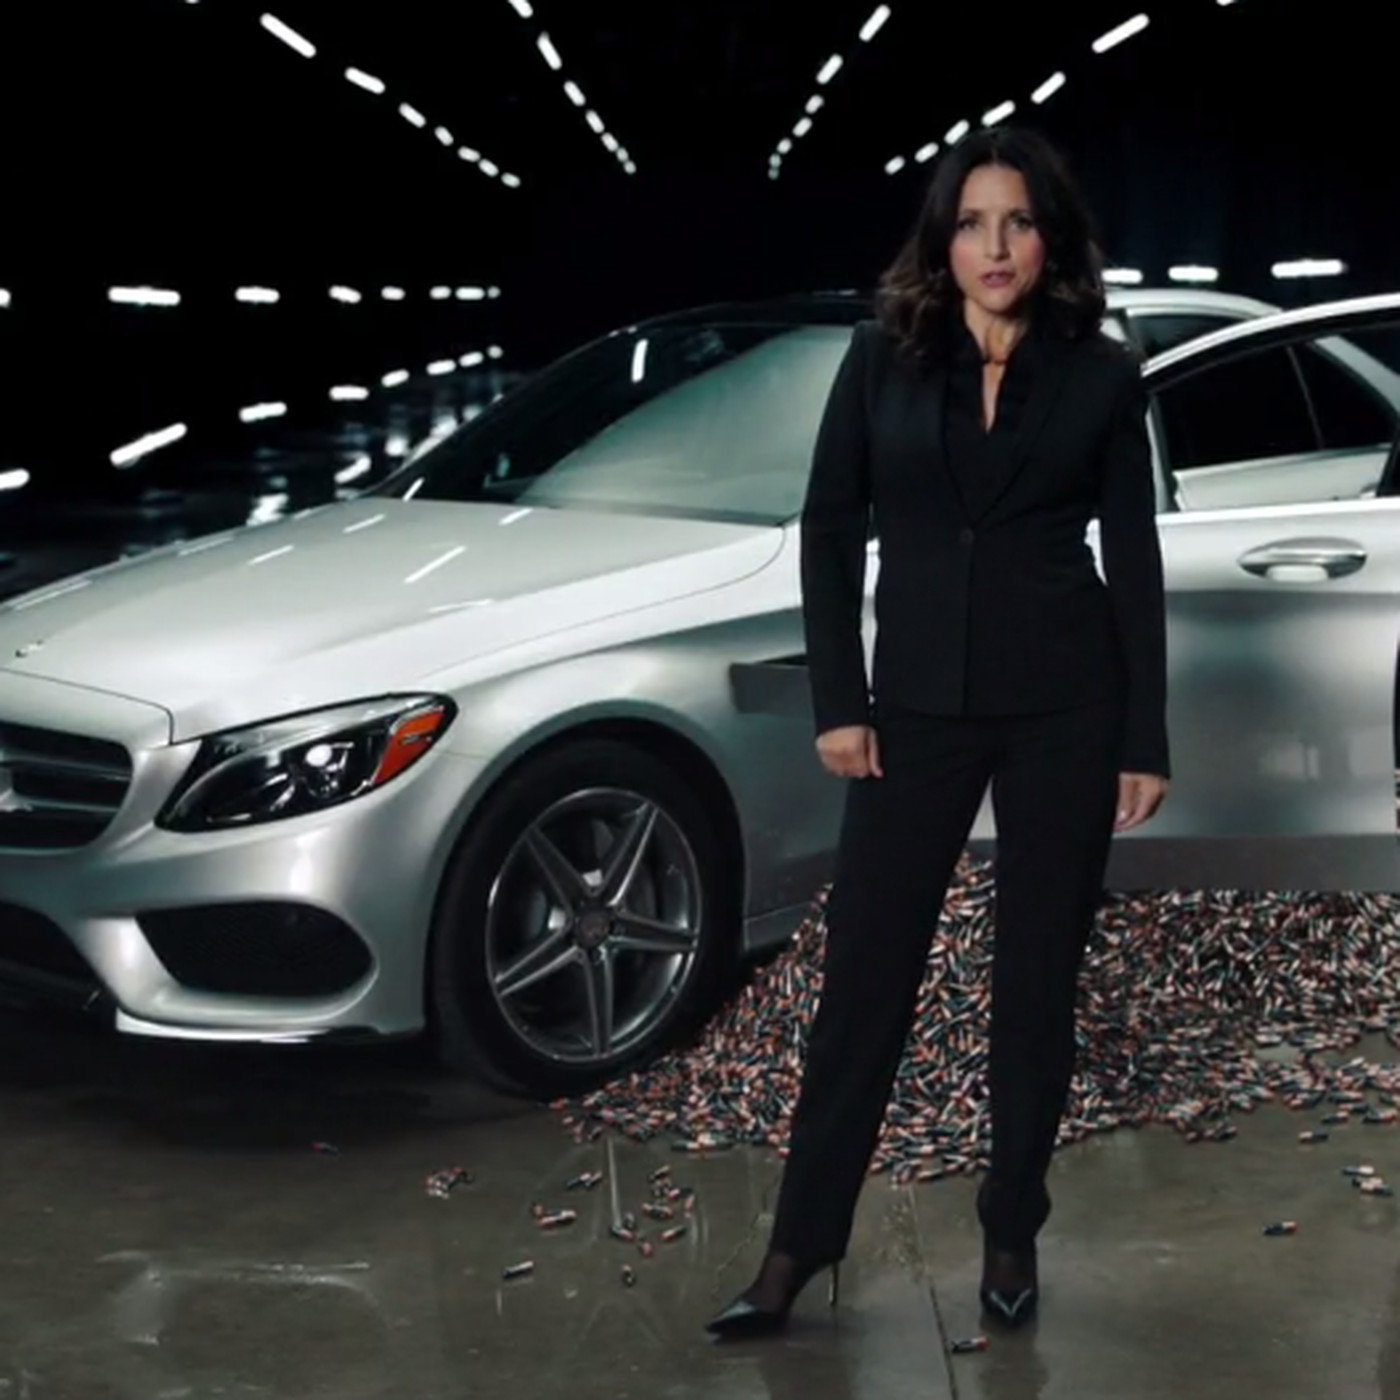 Mercedes-Benz responds to SNL's AA-battery powered car with its own